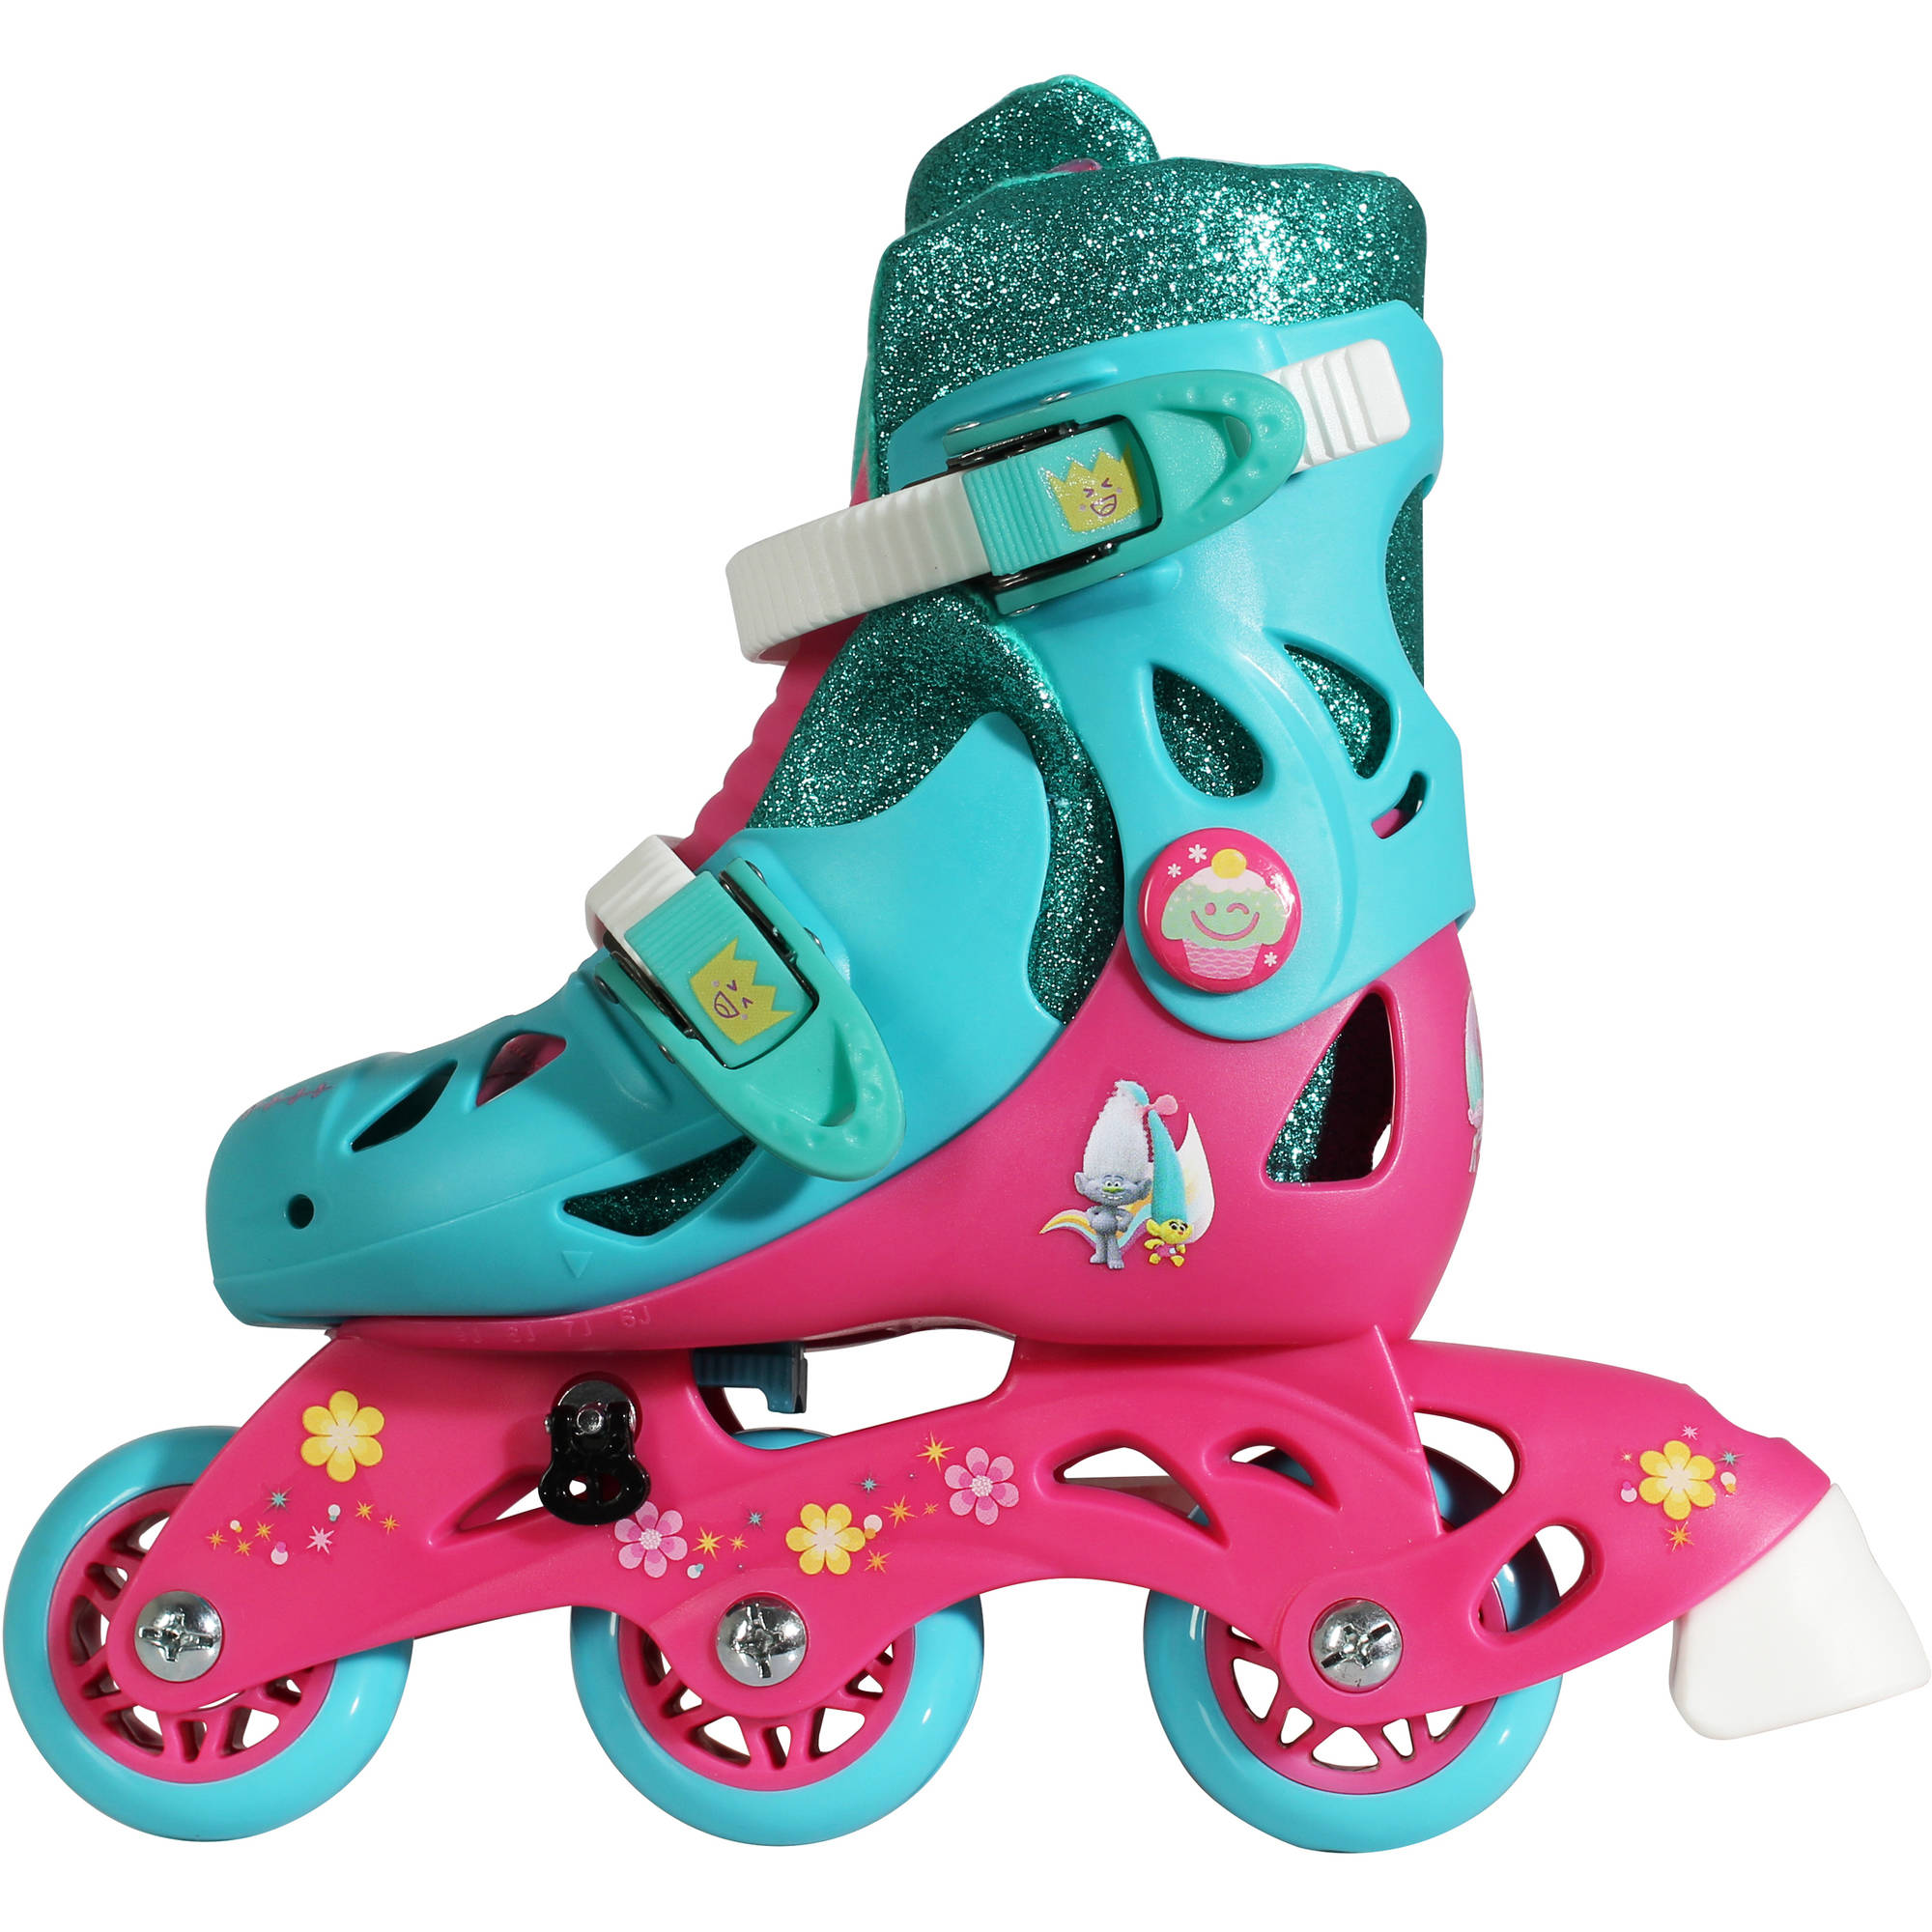 Playwheels Trolls Convertible 2-in-1 Kids Skate, Junior Size 6-9